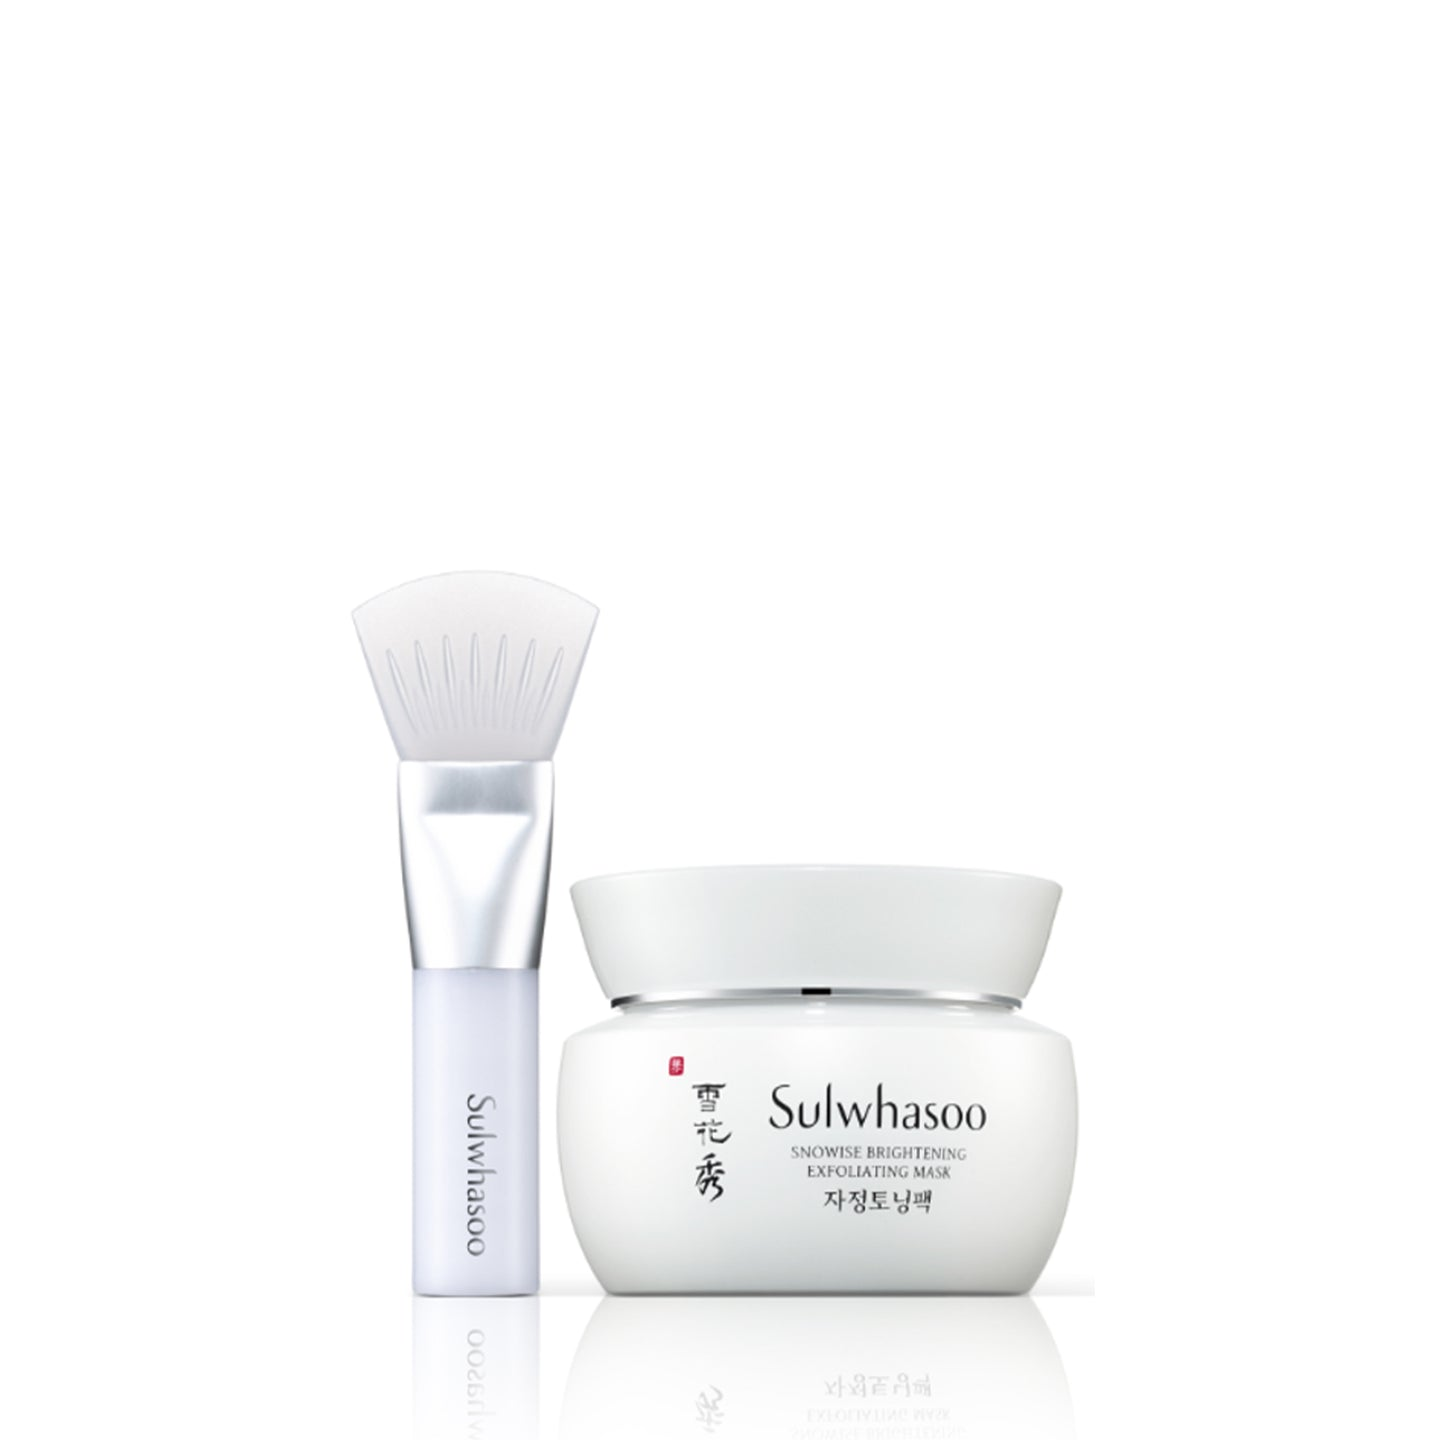 Snowise Brightening Exfoliating Mask